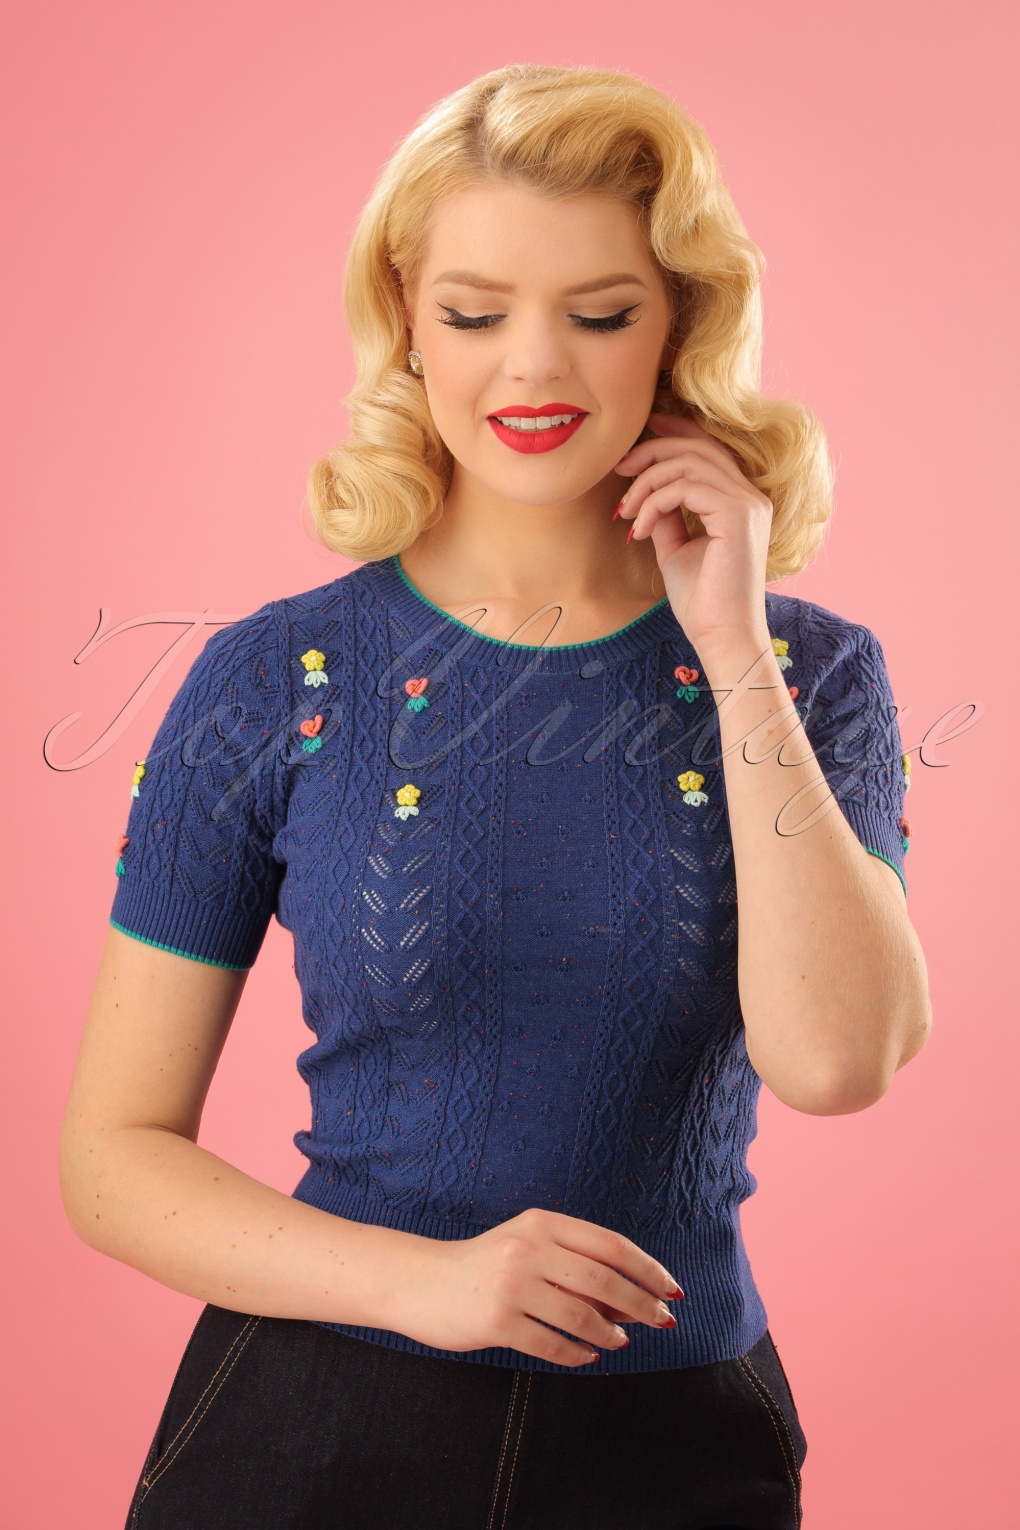 Vintage Sweaters: Cable Knit, Fair Isle Cardigans & Sweaters 50s Cupido Knit Top in True Blue £77.78 AT vintagedancer.com